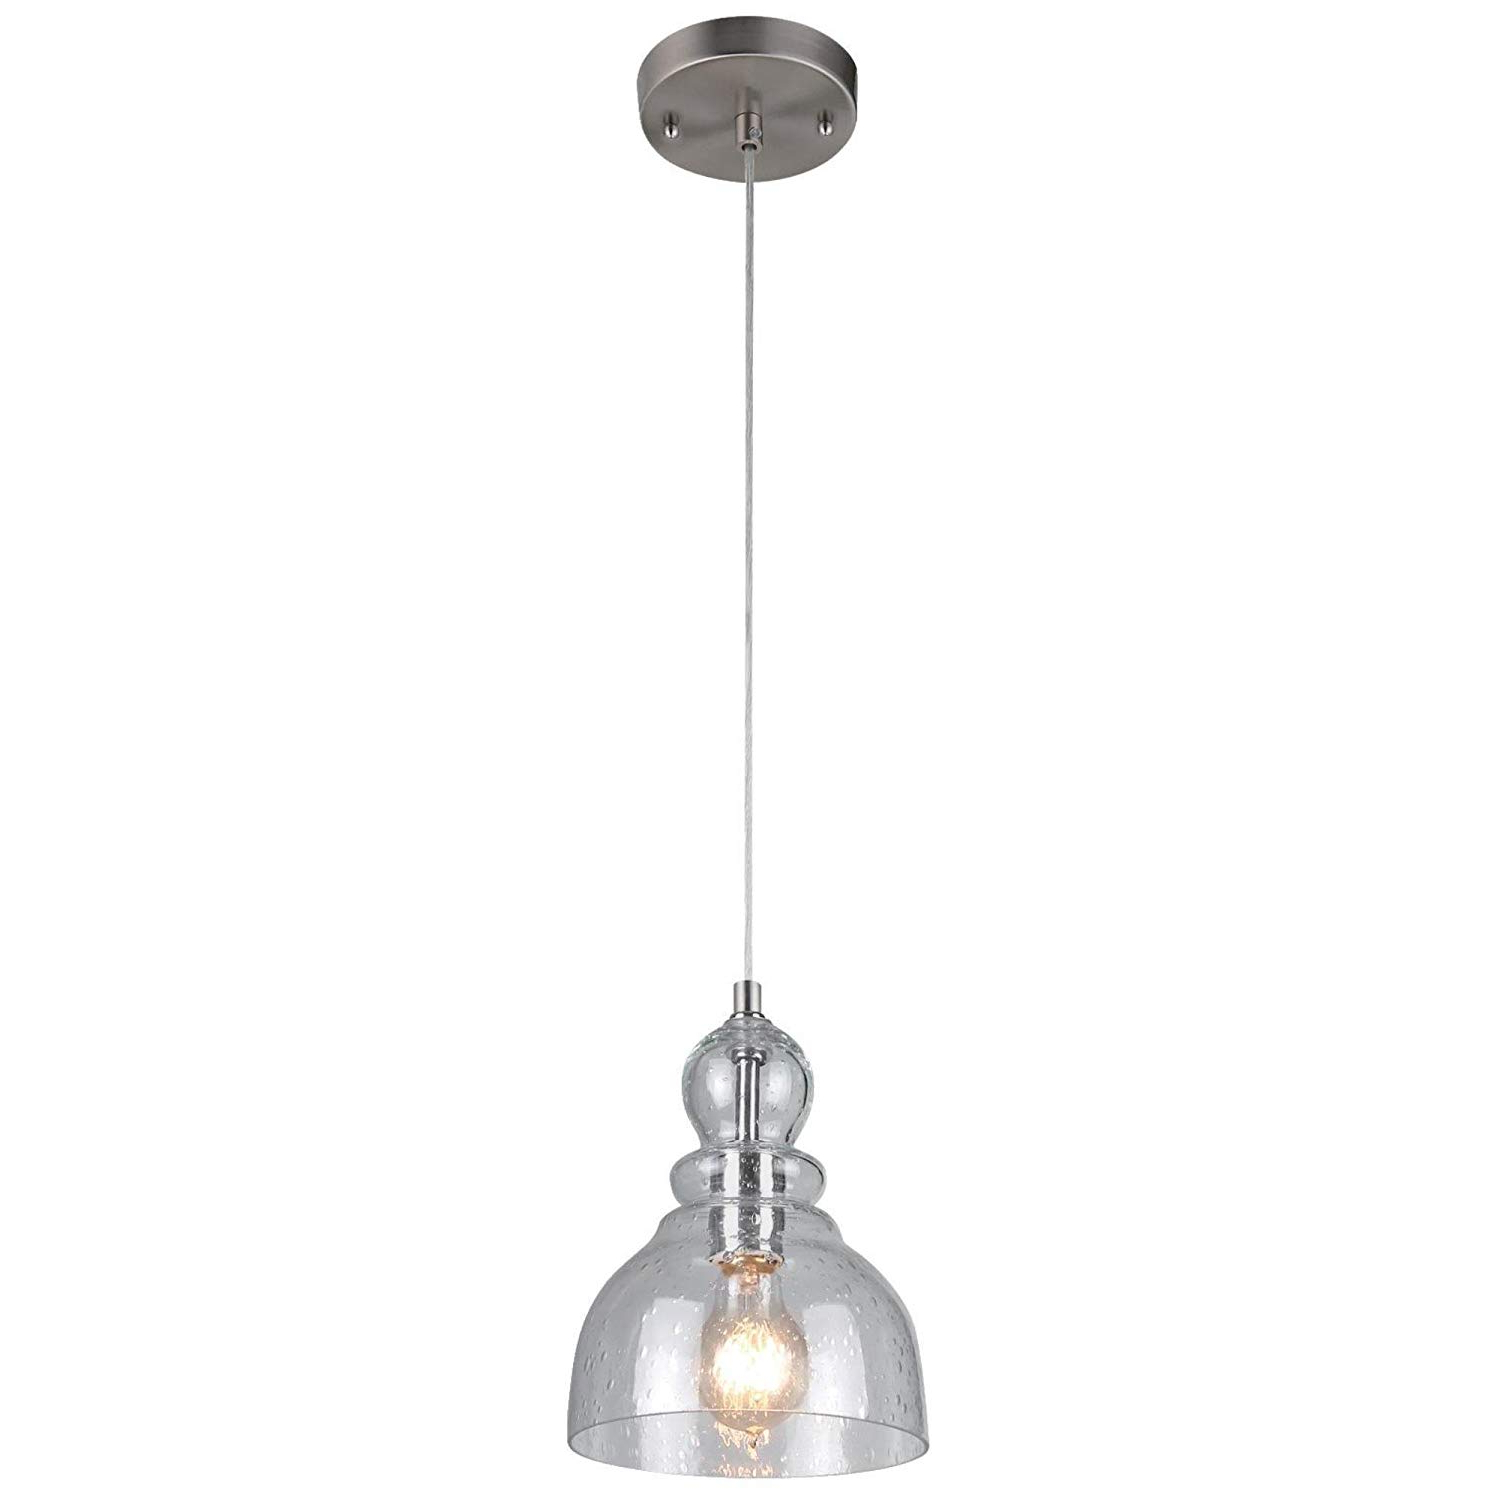 1-Light Single Star Pendants in Well-liked Westinghouse Lighting 6100700 One-Light Indoor Mini Pendant, Brushed Nickel  Finish With Clear Seeded Glass